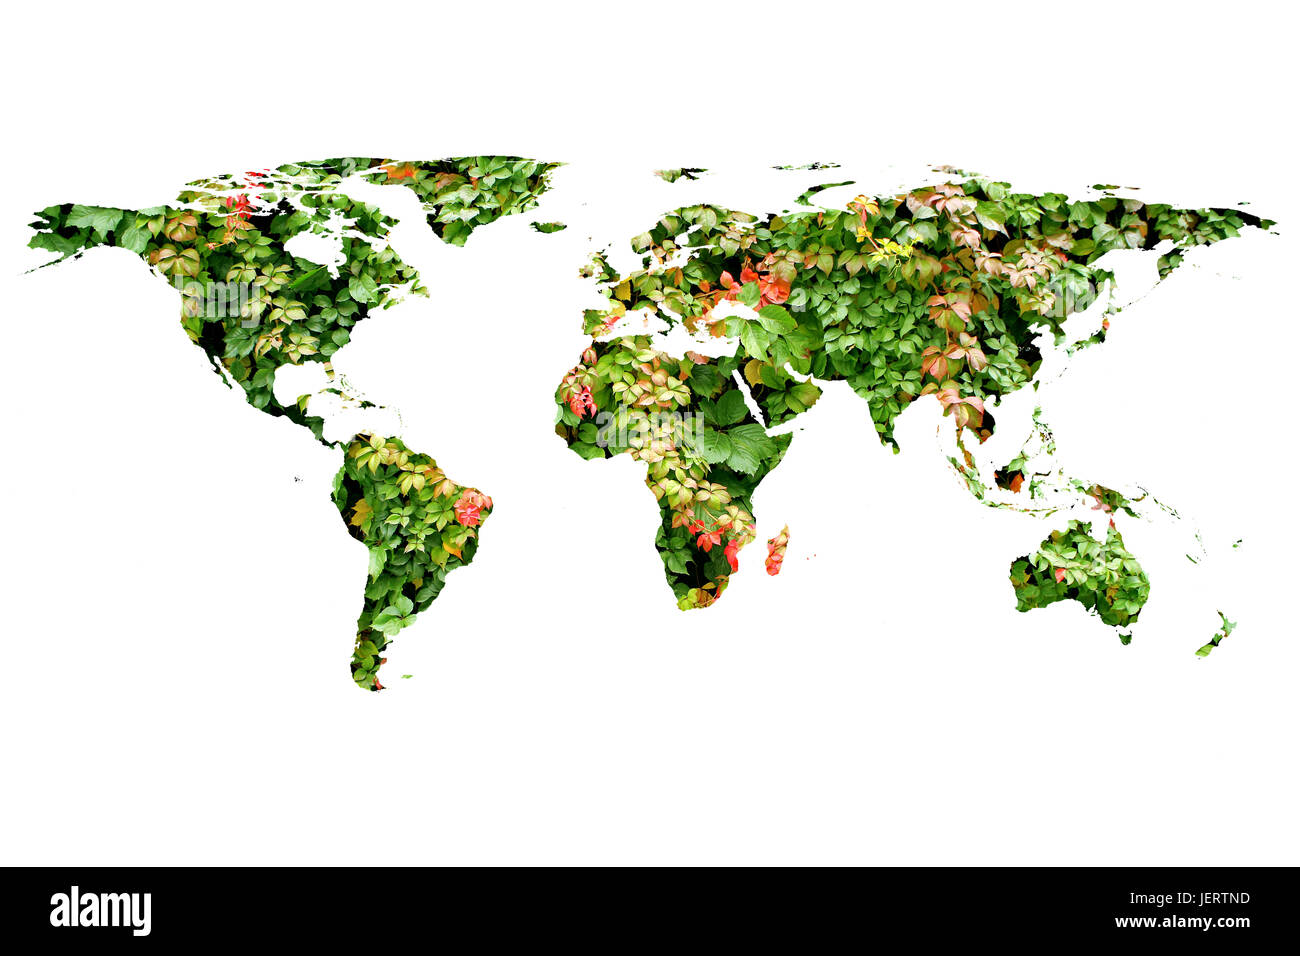 Conceptual image of flat world map and leaves nasa flat world map conceptual image of flat world map and leaves nasa flat world map image used to furnish this image gumiabroncs